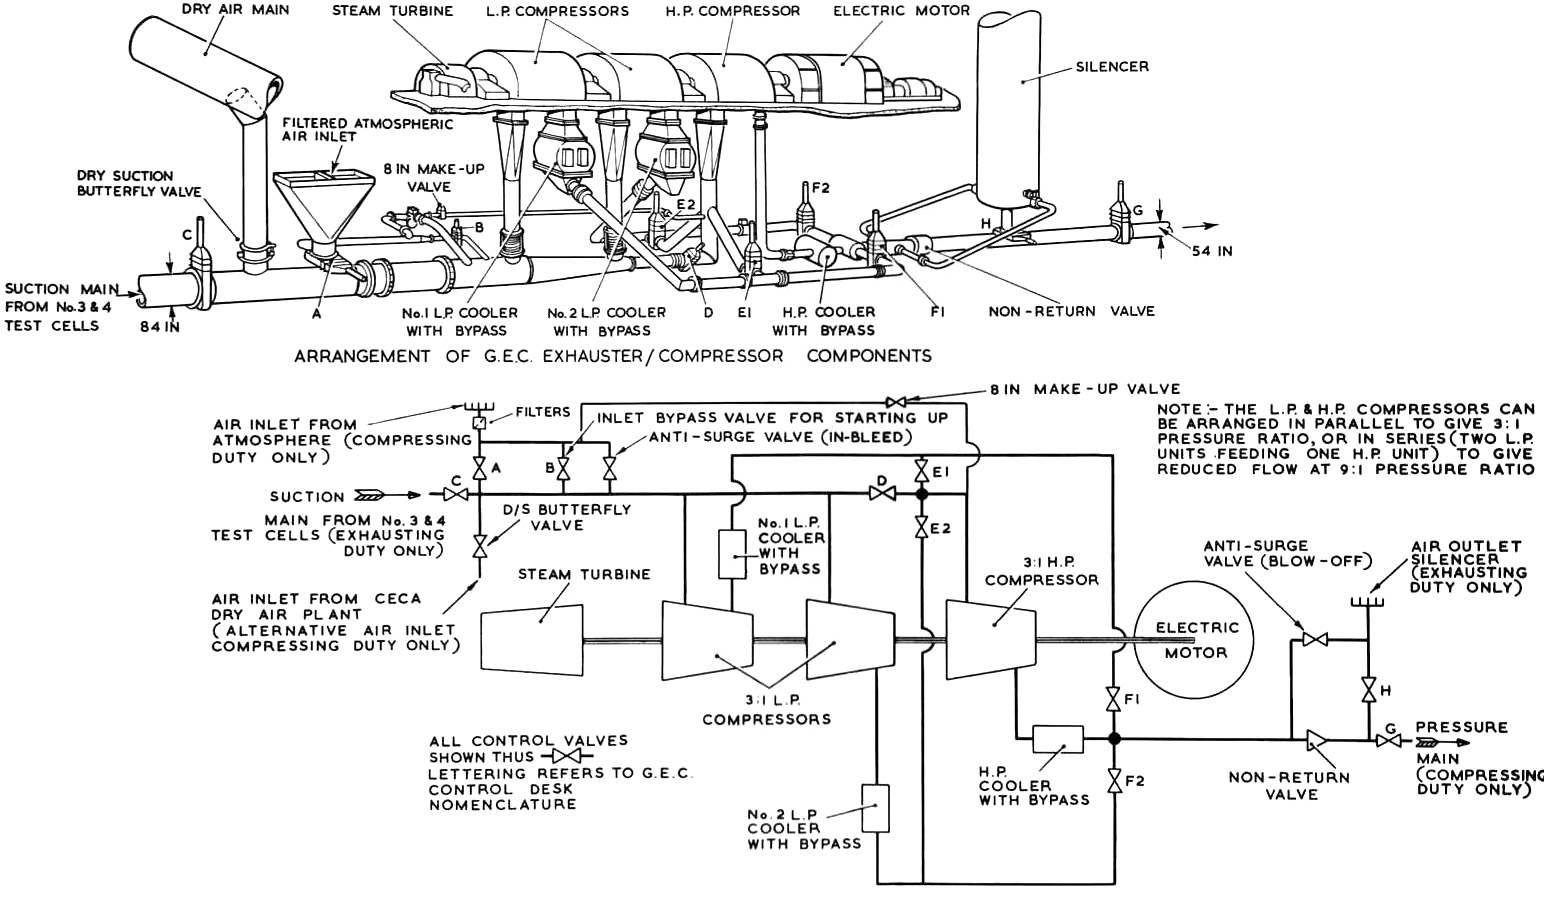 Transformer Wiring Diagram Also 200 Meter Socket Moreover 200 Meter